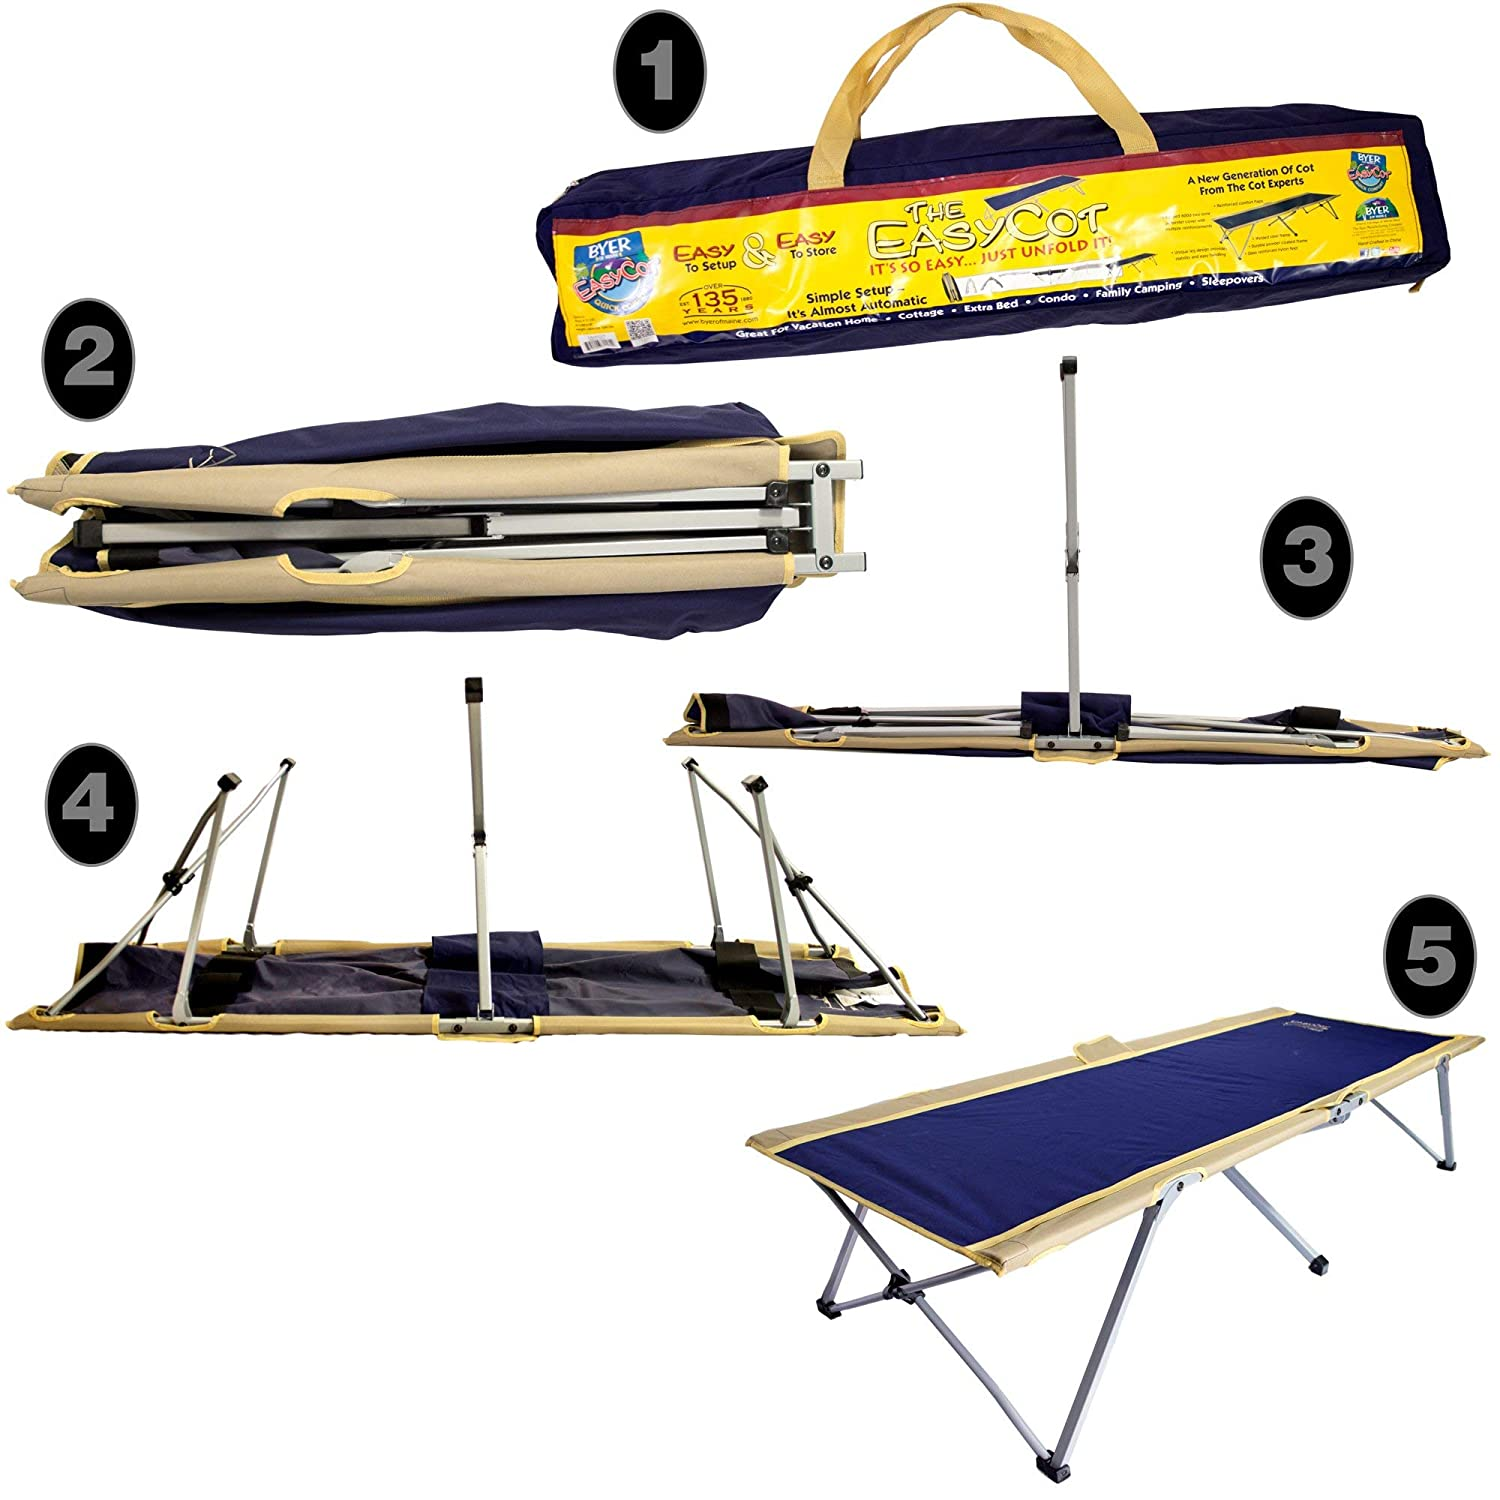 Easy cot BYER OF MAINE EasyCot Single//Twin Size Renewed Camp cot Indoor Guest Bed Ideal for Camping and Hunting